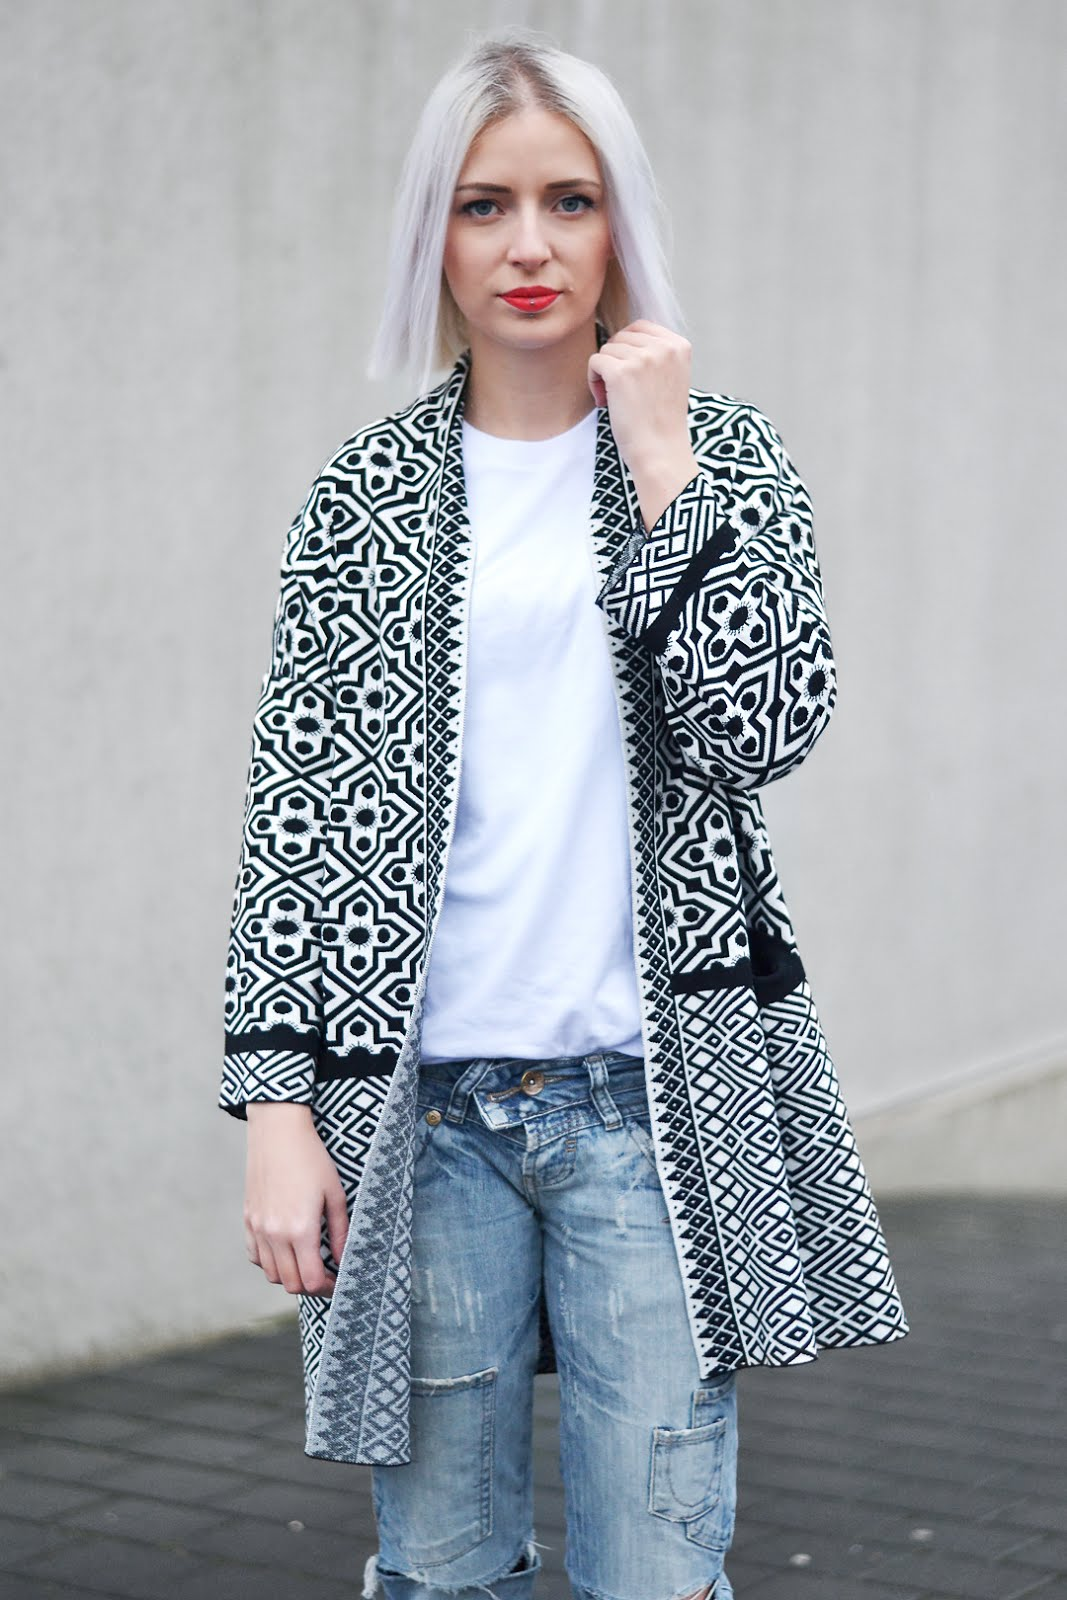 Shein, sheinside, ootd, outfit, black & white cardigan, geometric, casual outfit, winter 2016, trends, streetstyle, zara ripped jeans, h&m pointed boots